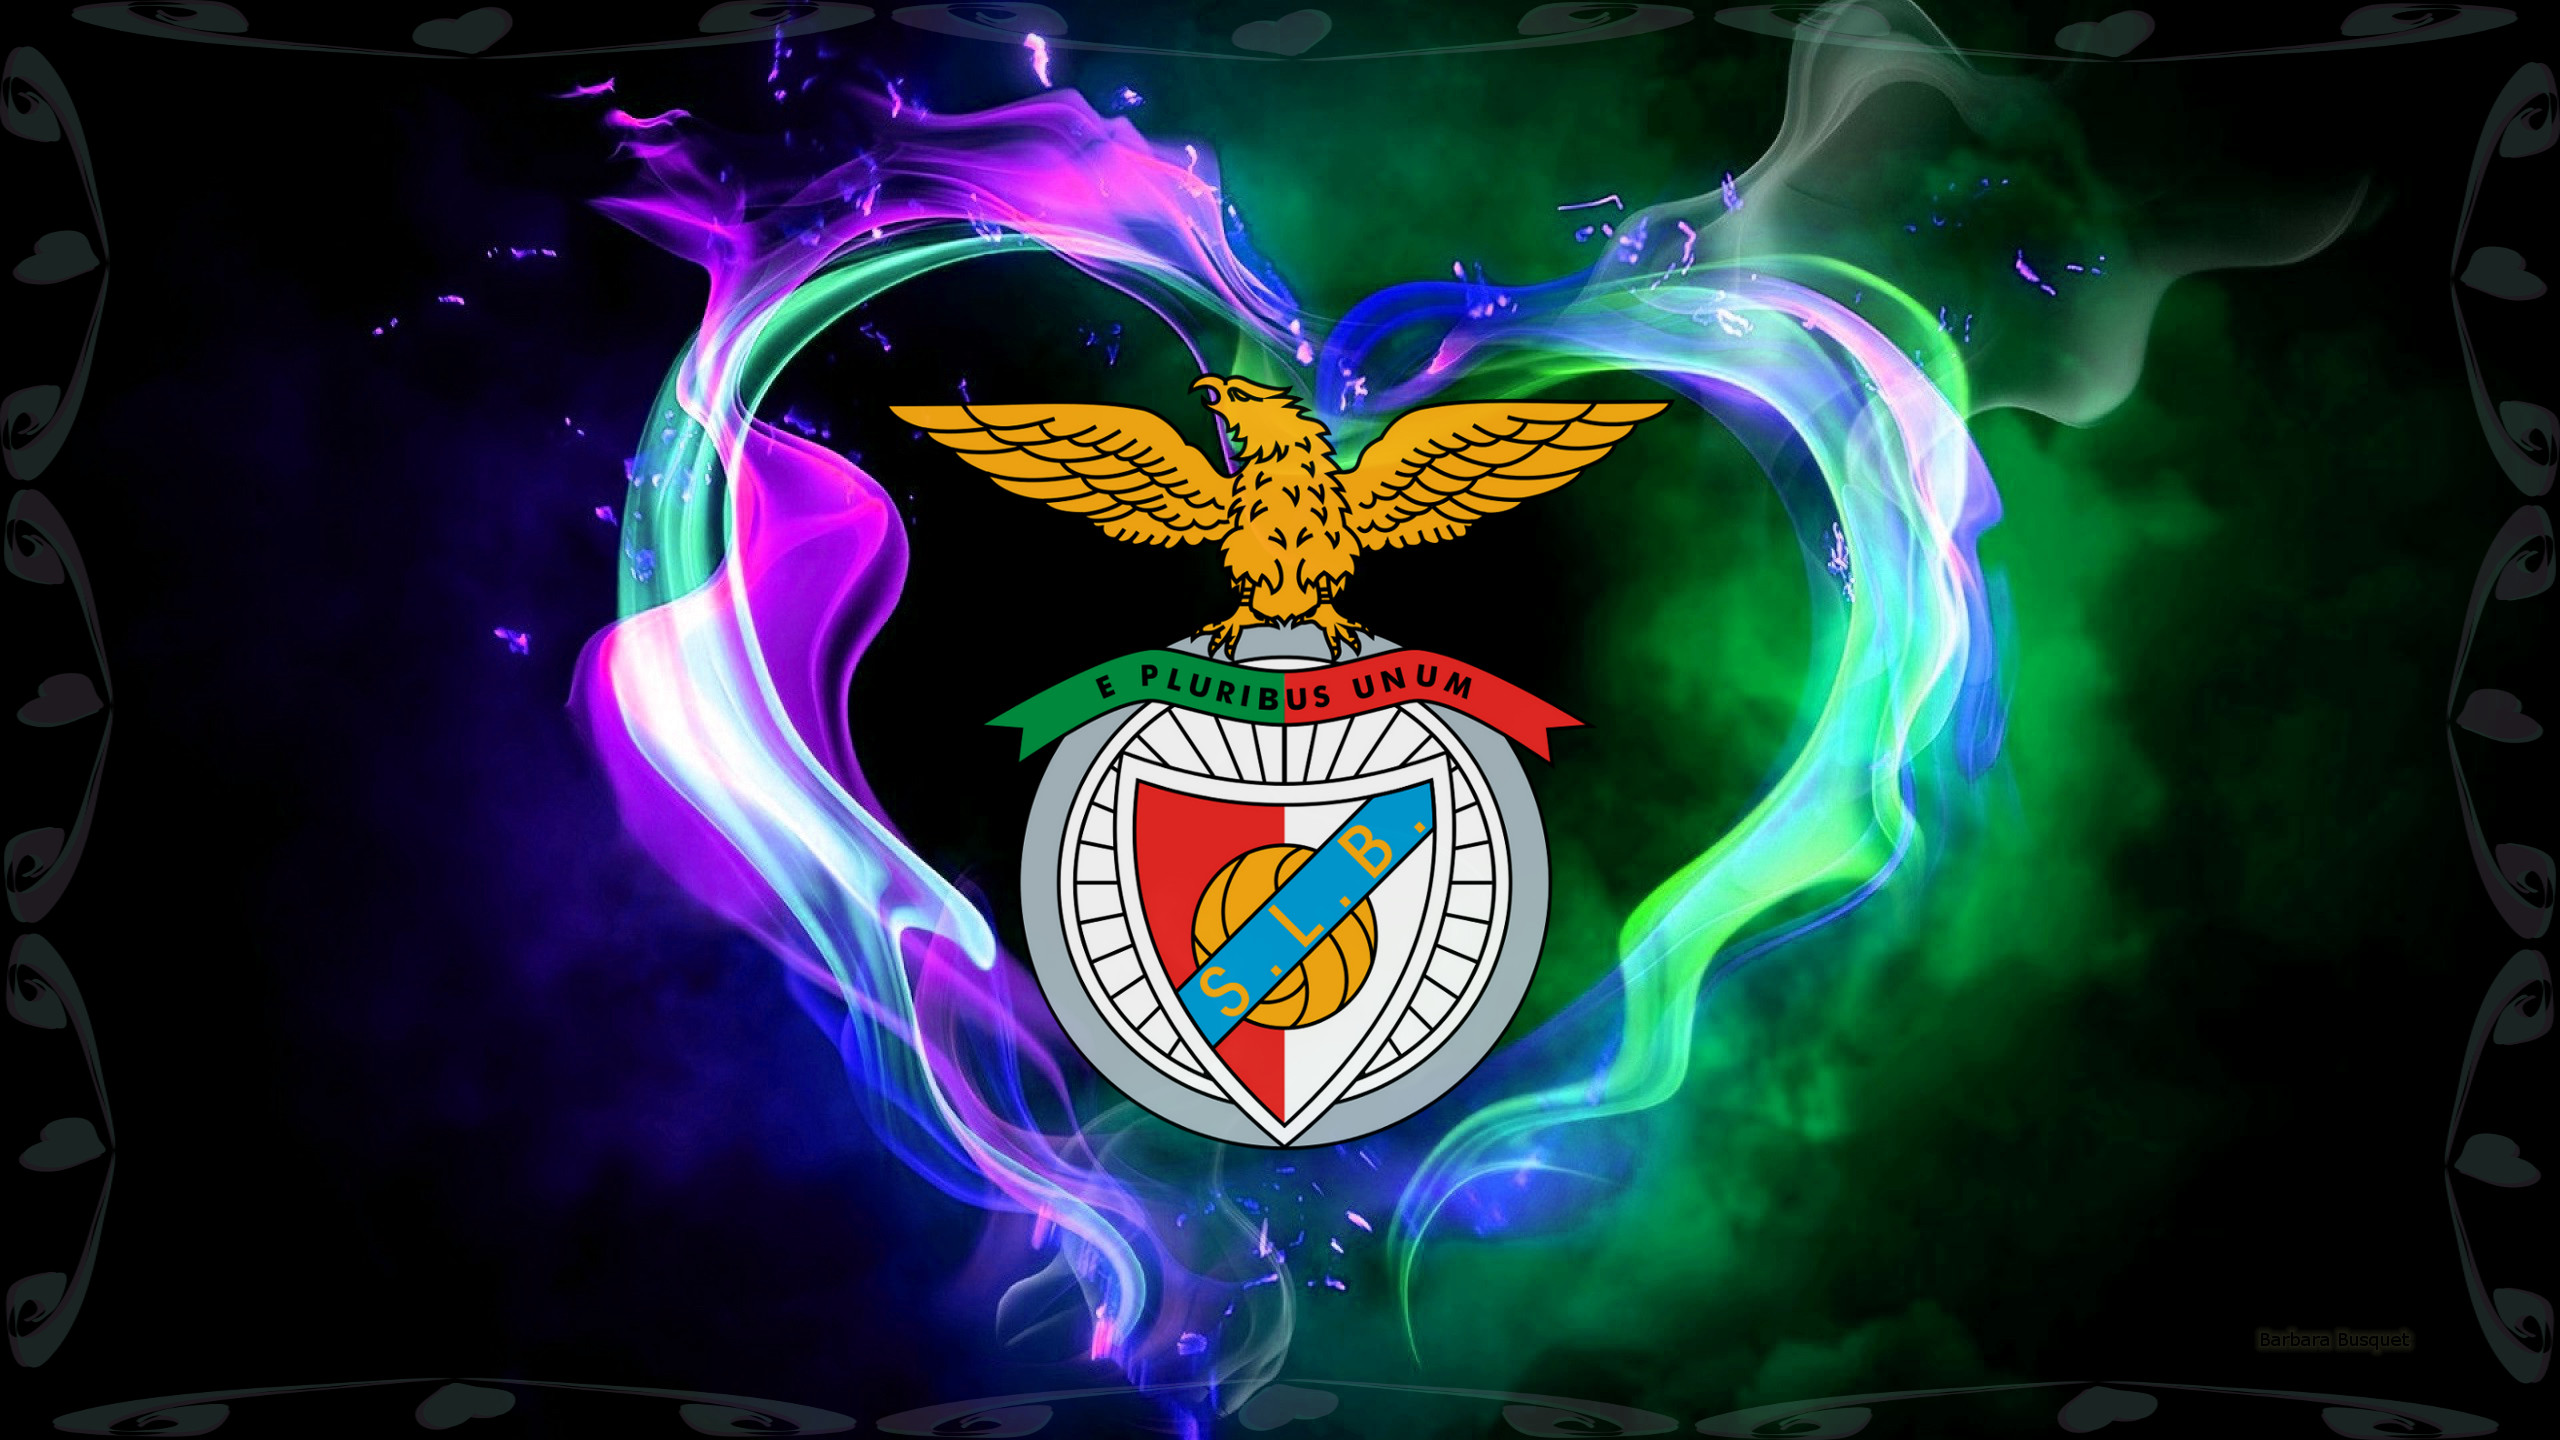 Fall In Love Mobile Wallpaper Benfica Football Club Wallpapers Barbaras Hd Wallpapers